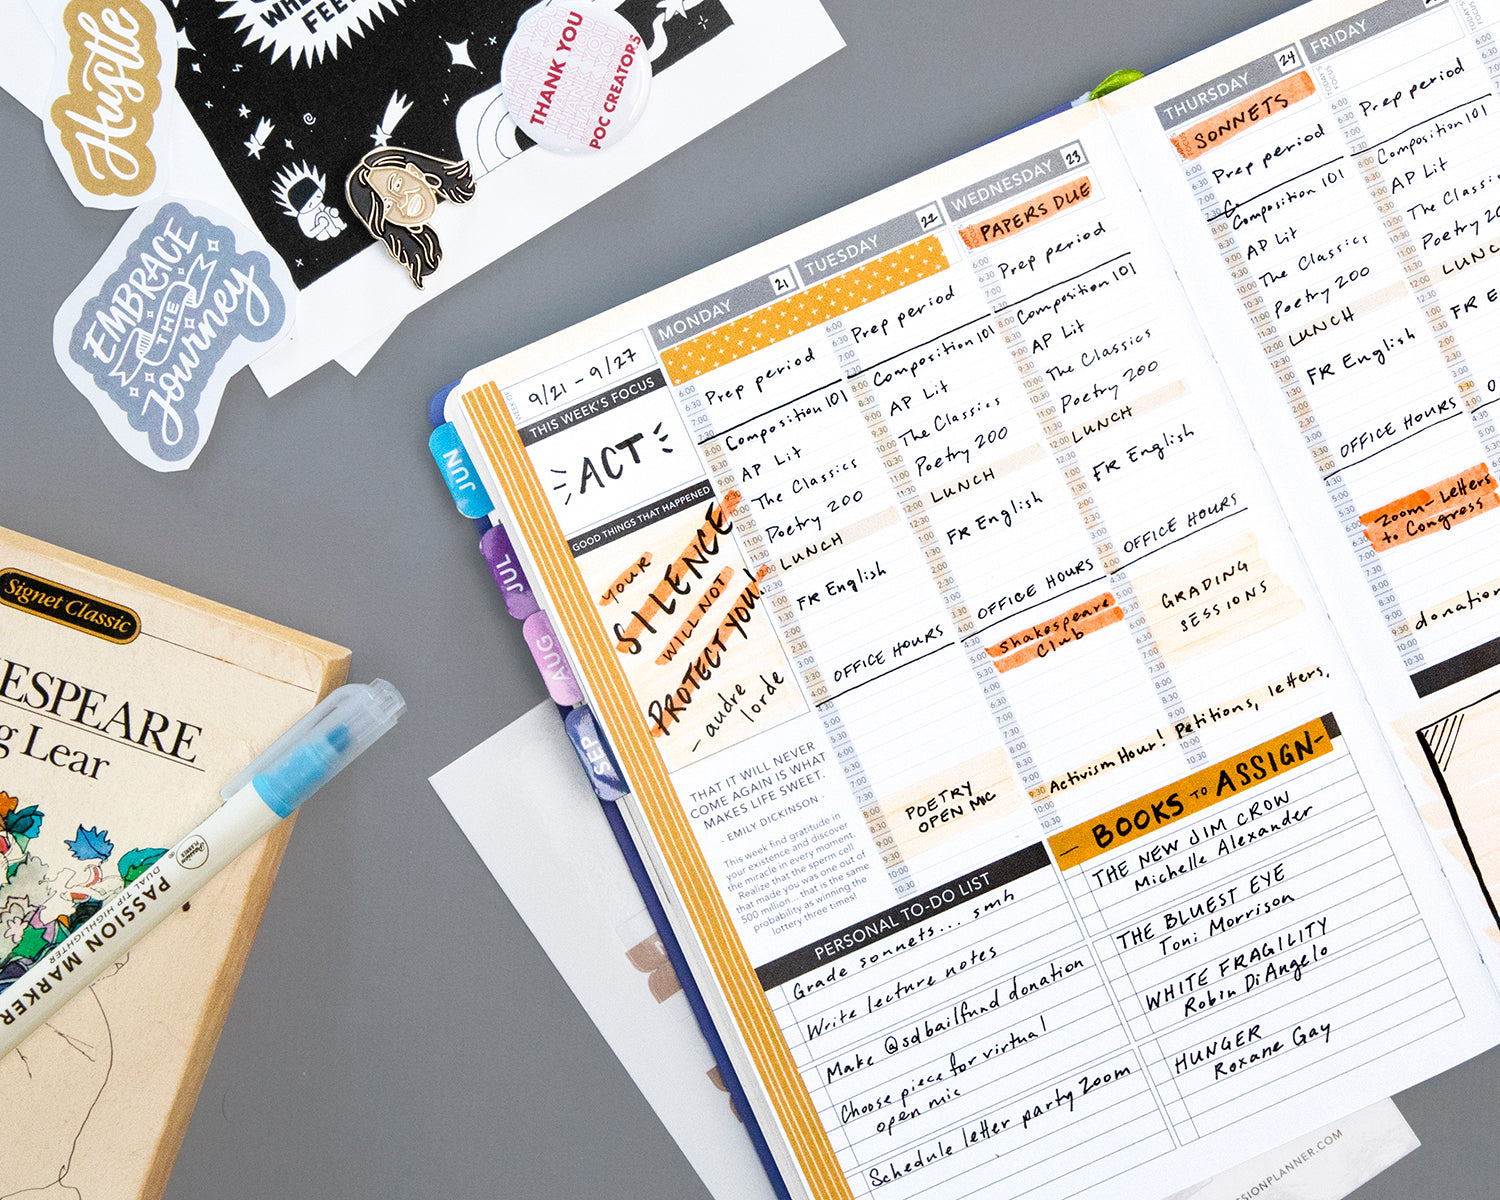 Passion Planner Idea based on Mr. Morgan from 10 Things I Hate About You